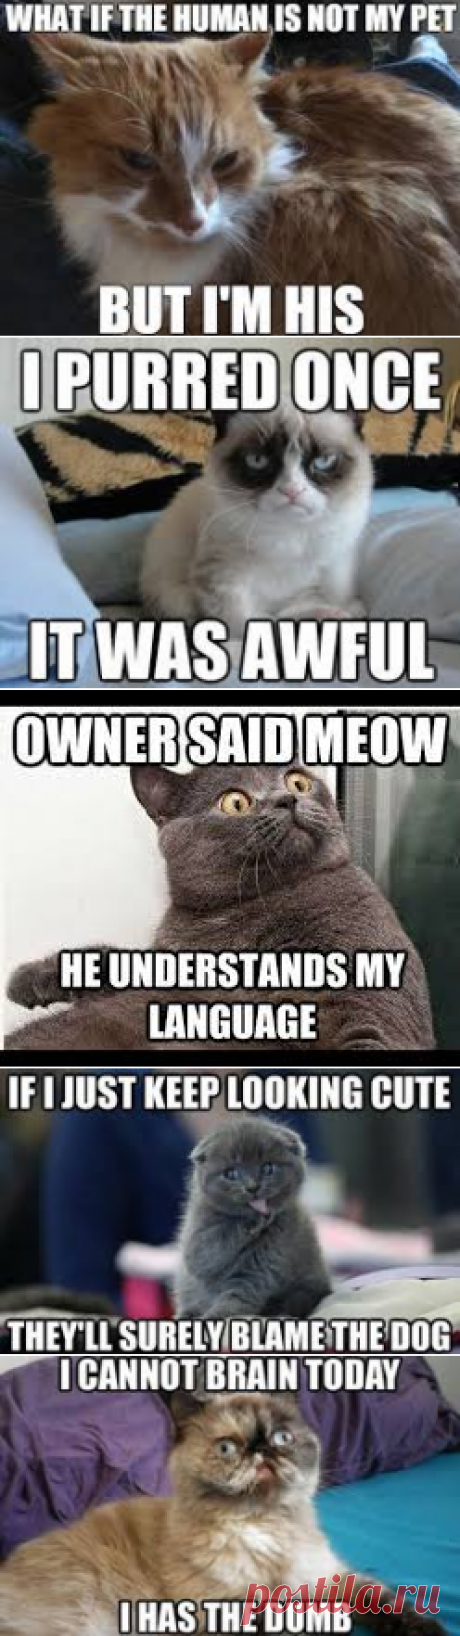 CAT MEMES - Google Search